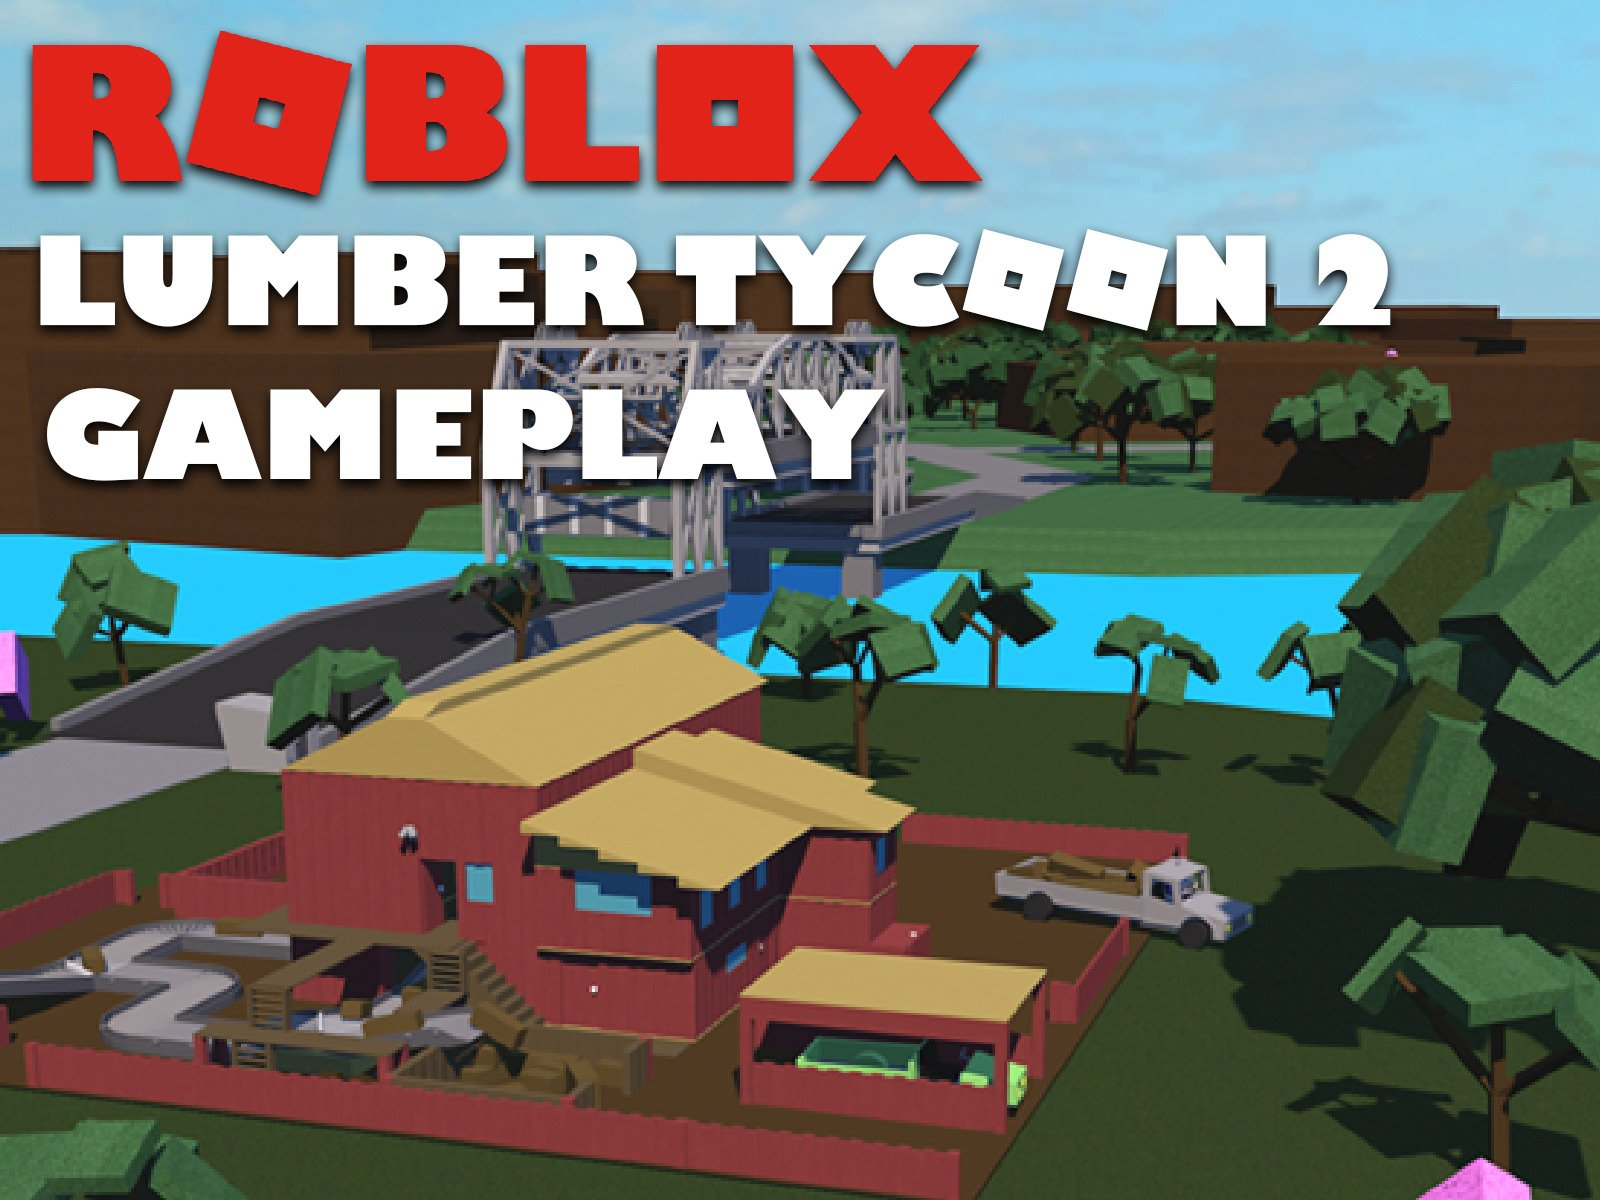 Clip: Roblox Lumber Tycoon 2 Gameplay